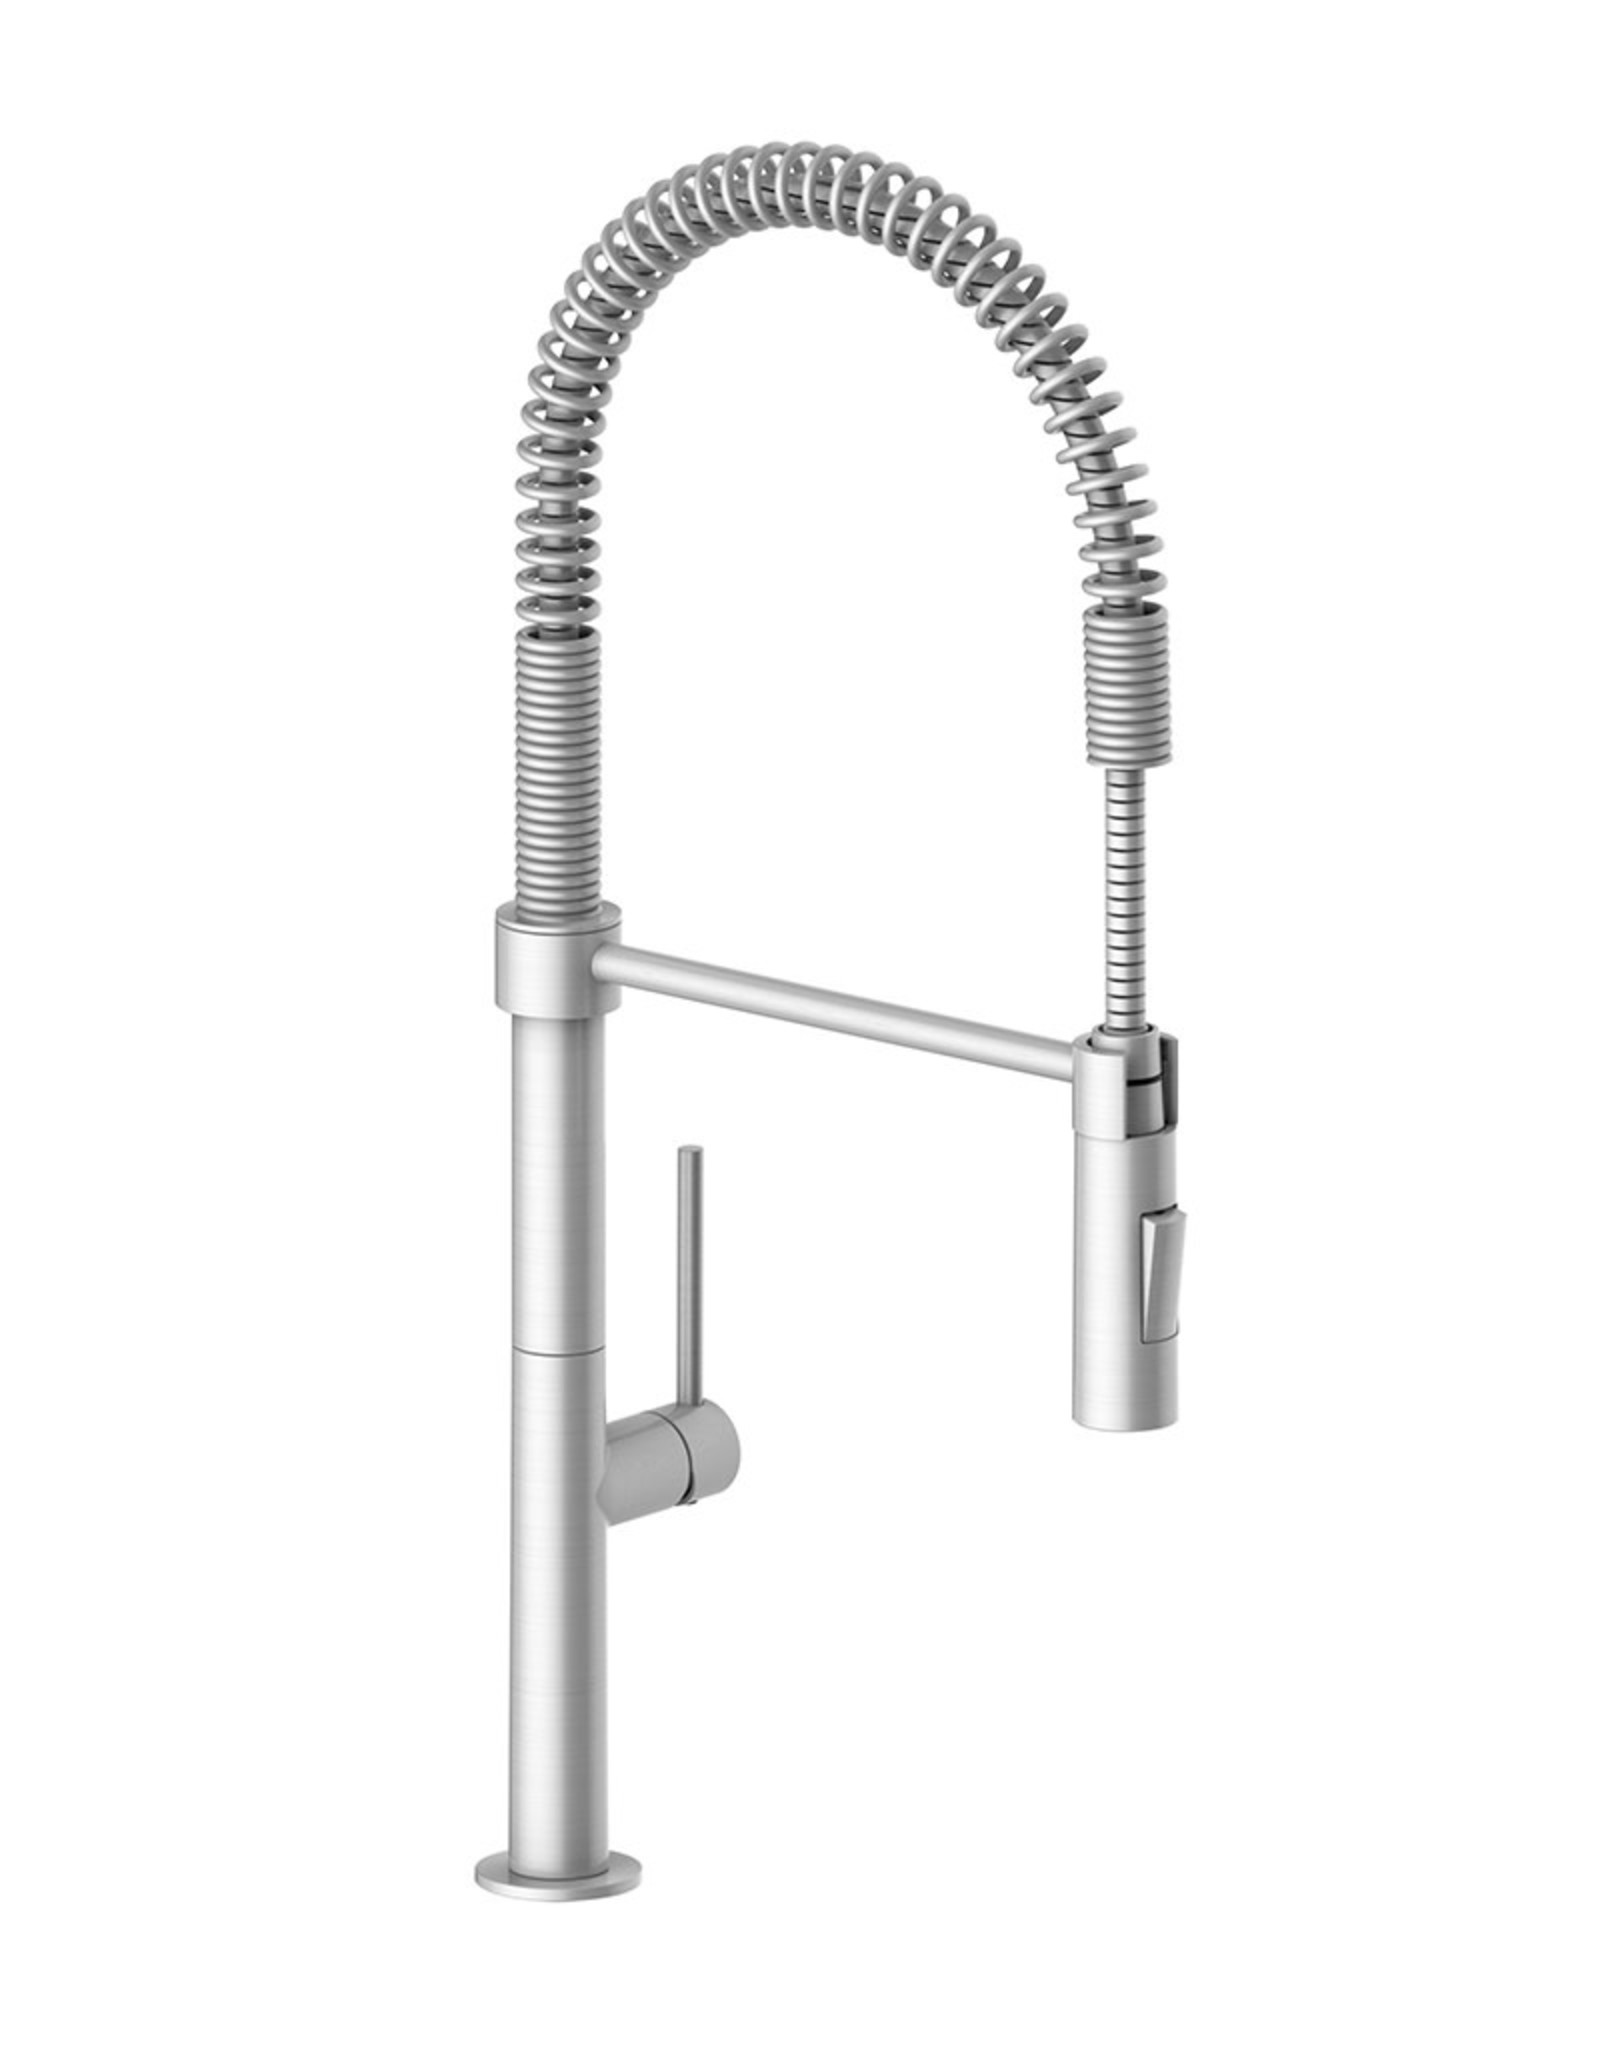 Vogt VOGT BREGENZ - KITCHEN FAUCET WITH 2-FUNCTION DETACHABLE SPRAY STAINLESS STEEL